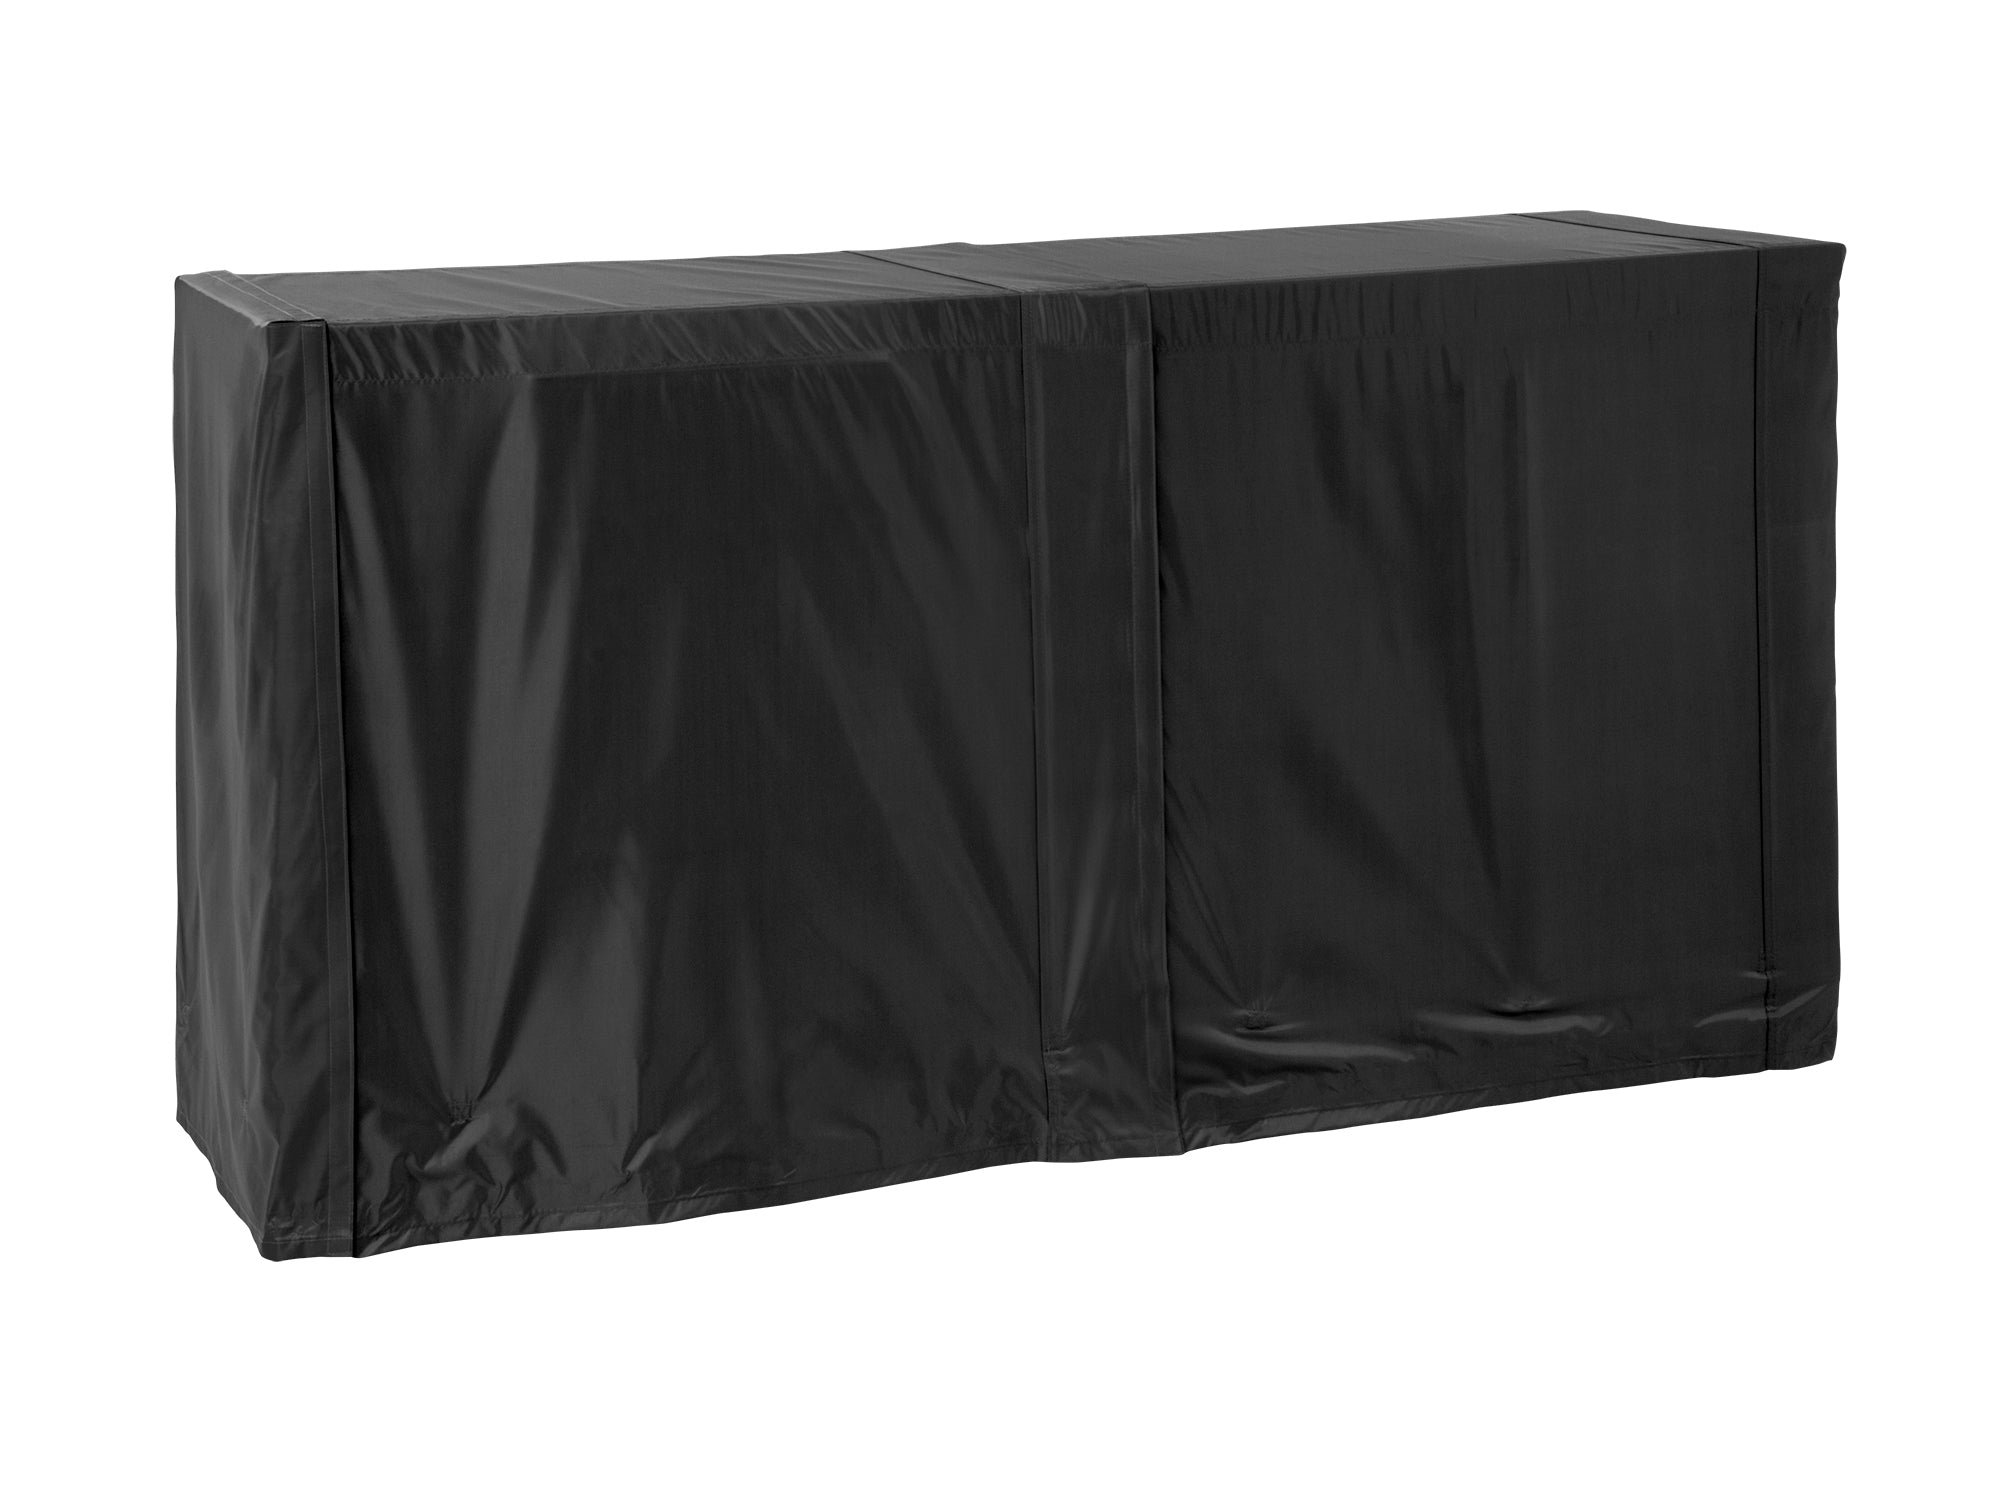 Outdoor Kitchen All-Season Cover Bundle: 40 in. Insert Grill Cabinet Cover, 96 in. Cover, Right/Left Side Panel Covers